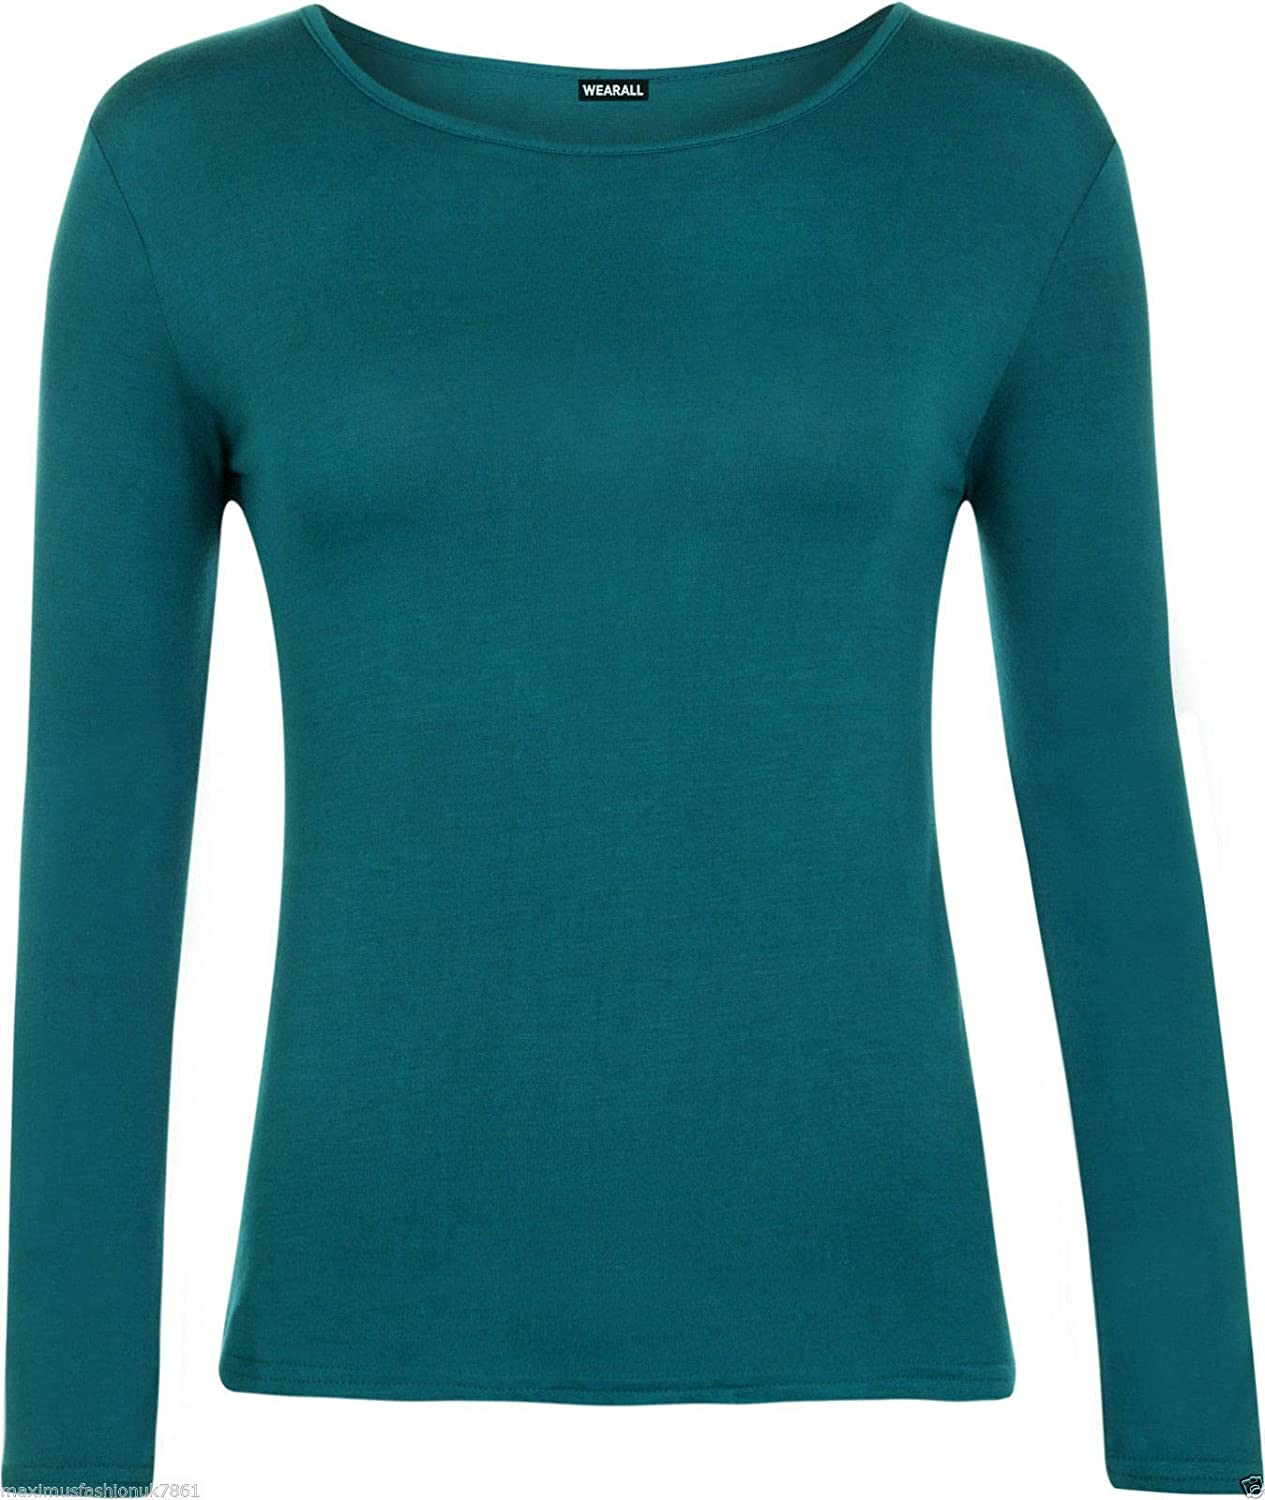 Children Long Sleeve Plain Top Shirt Kids Scoop Neck Stretchy Party Wear Tee Top